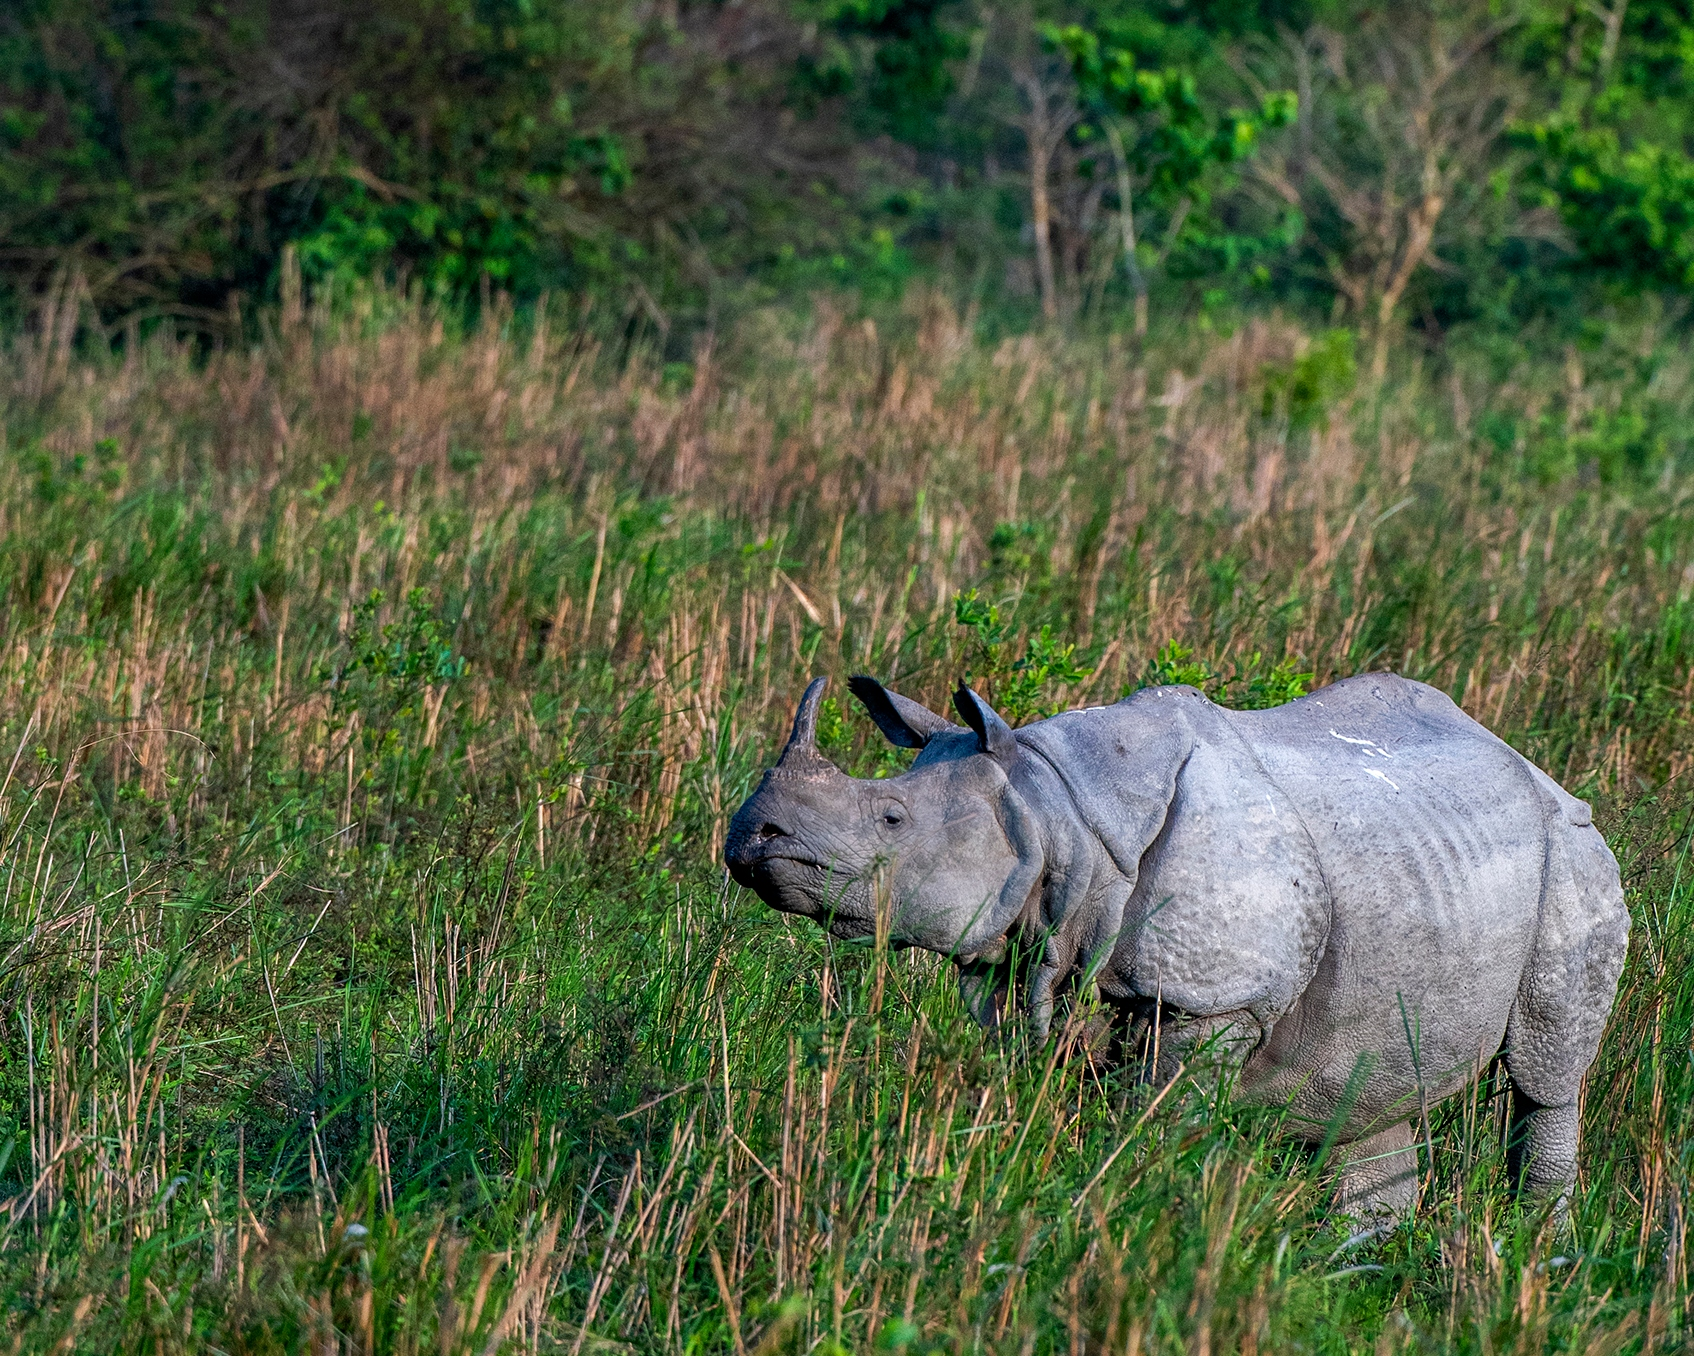 Spotting a greater one-horned rhinoceros in Kaziranga National Park is not a challenge. The park has the largest number of rhinos in the world. Despite several challenges, it is known as the pachyderm's most secure habitat. Photo: Udayan Borthakur